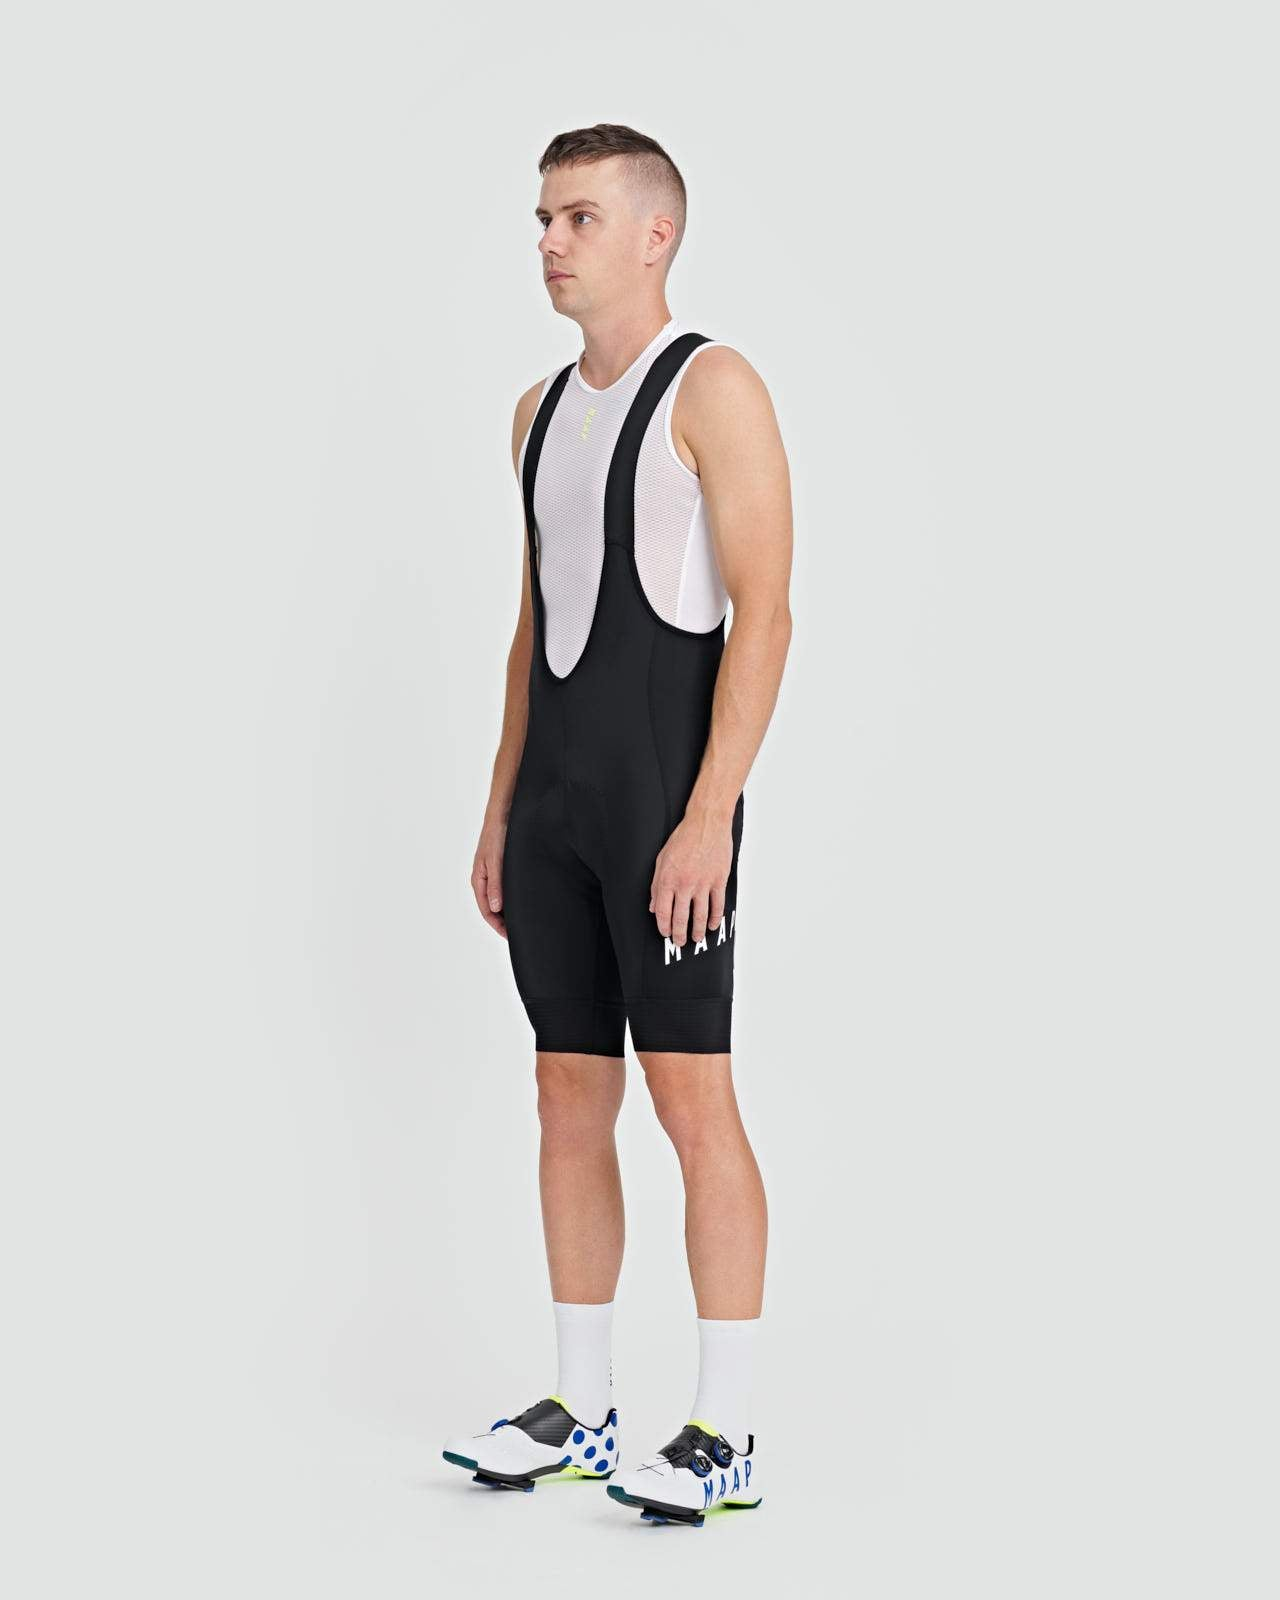 Team Bib Shorts 3.0 - Black/White